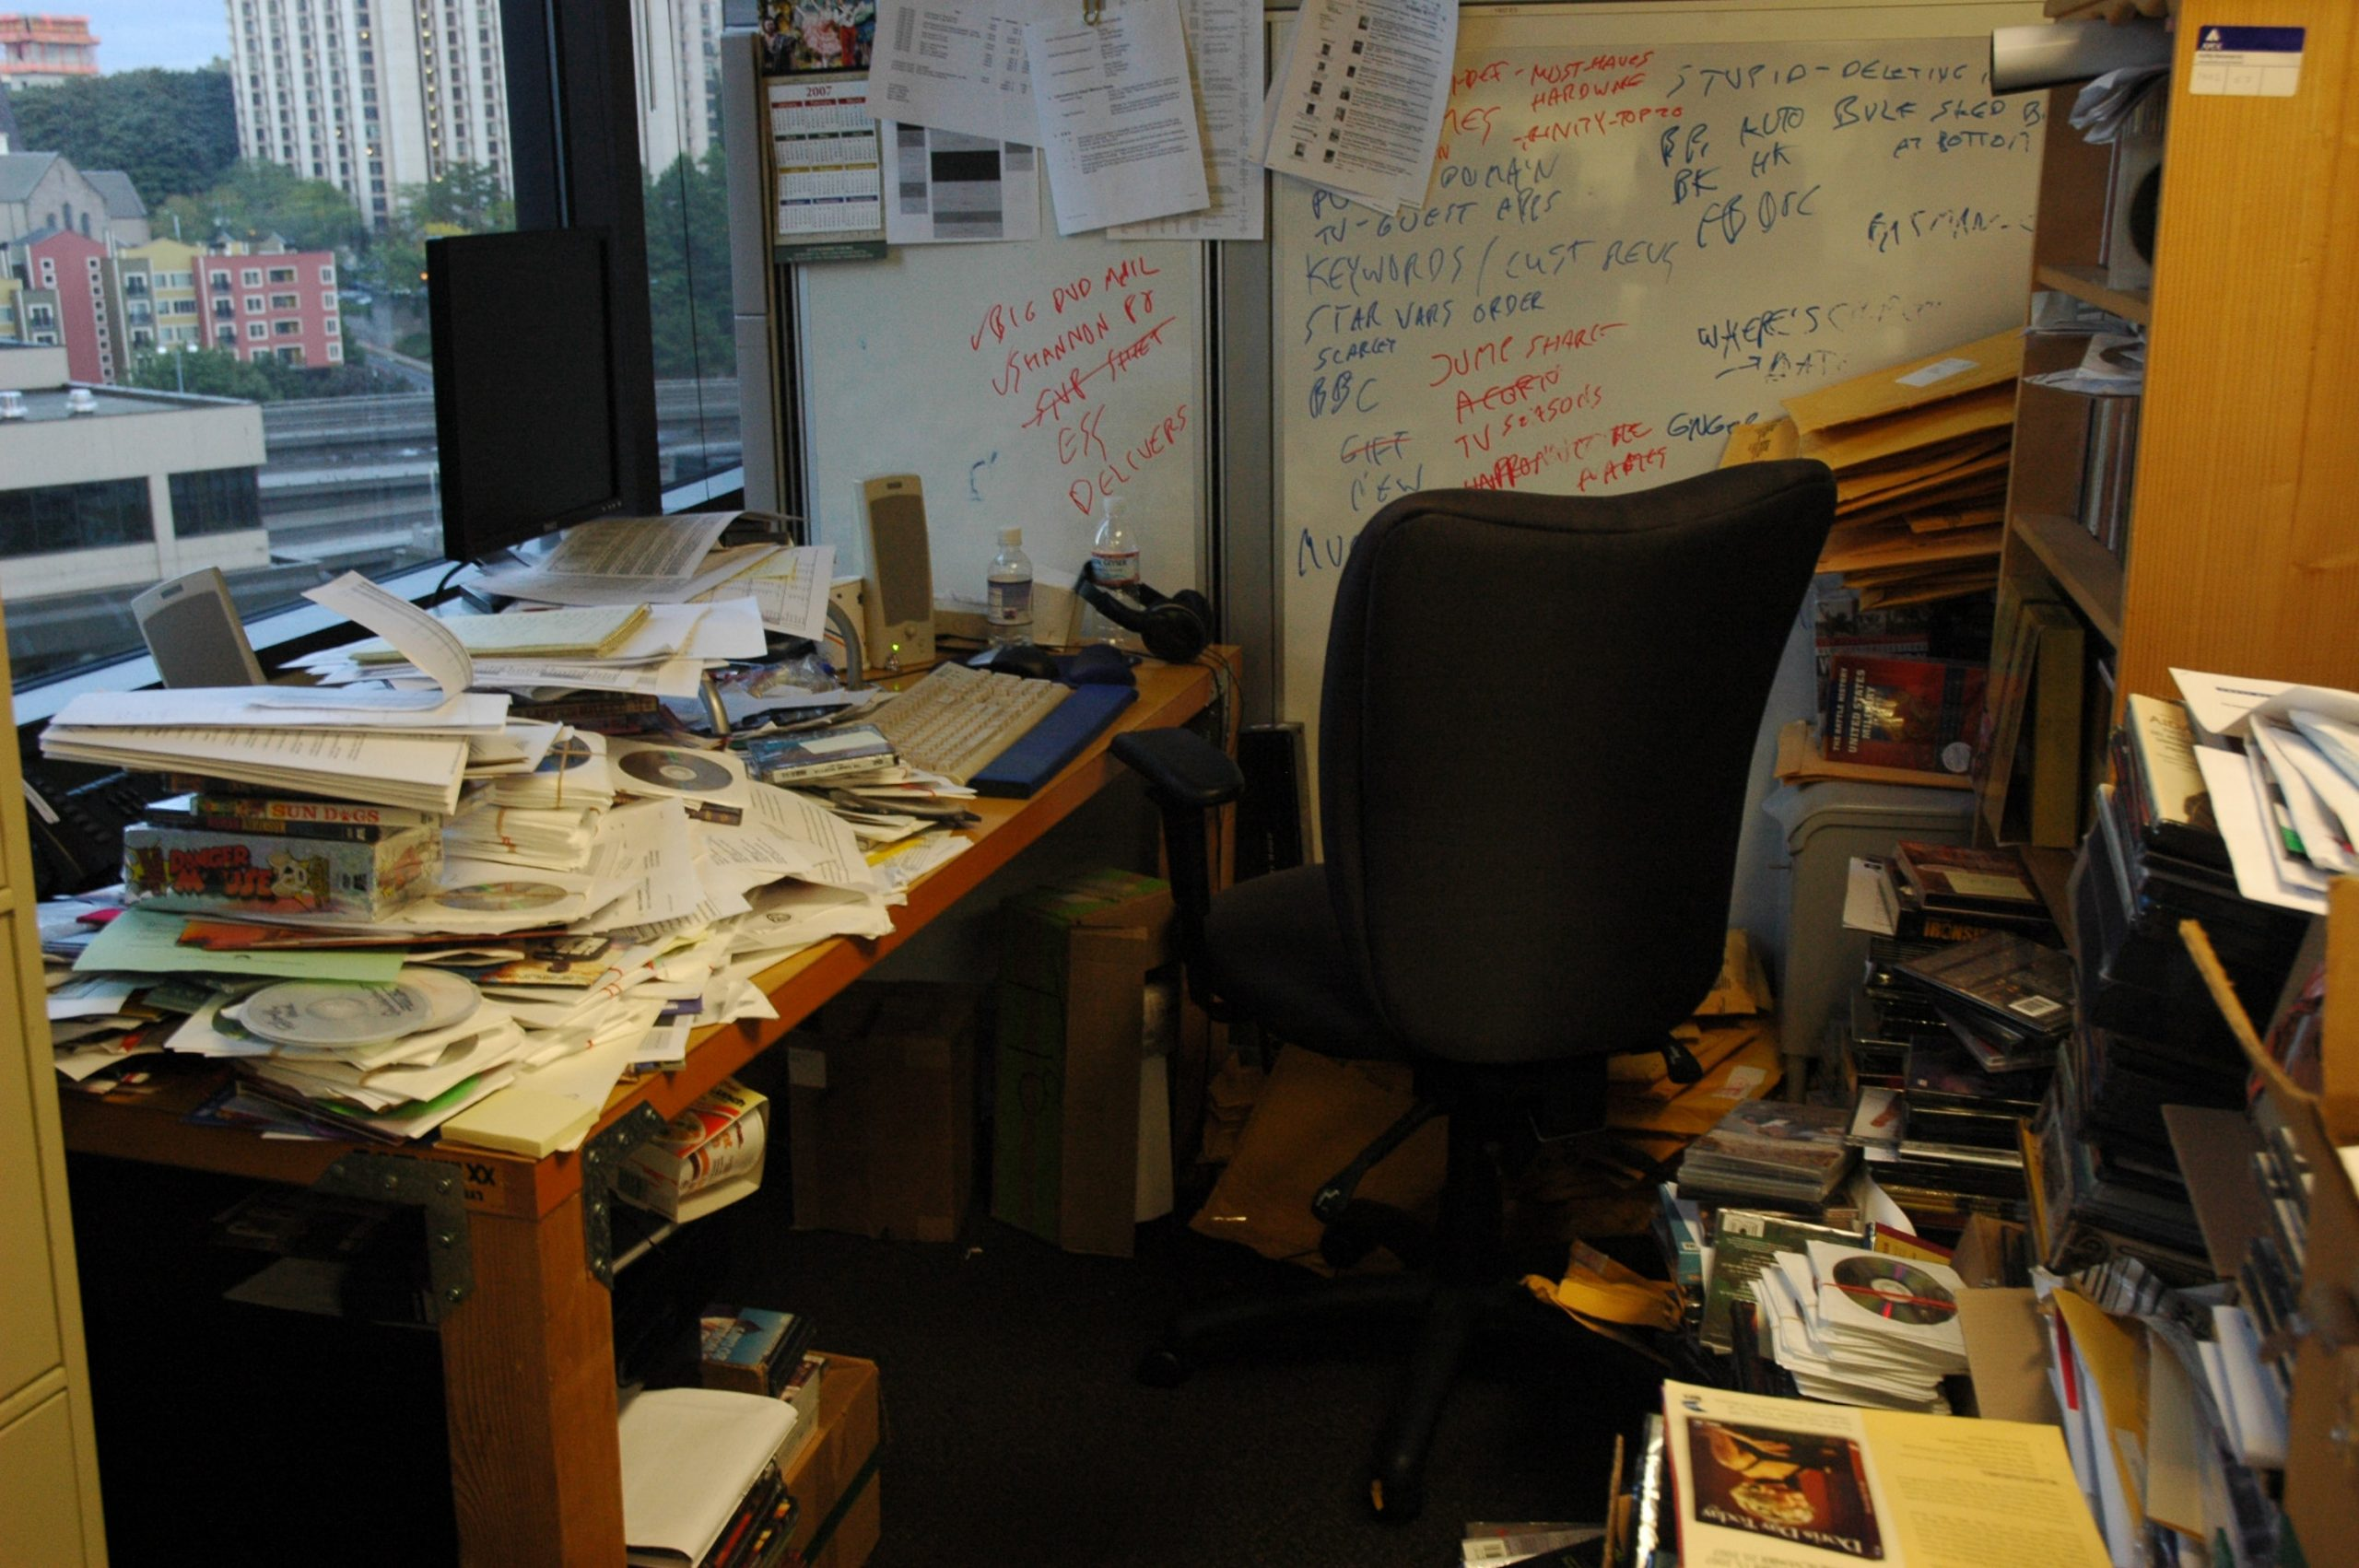 A cluttered home office with table and floor filled with piles of paper